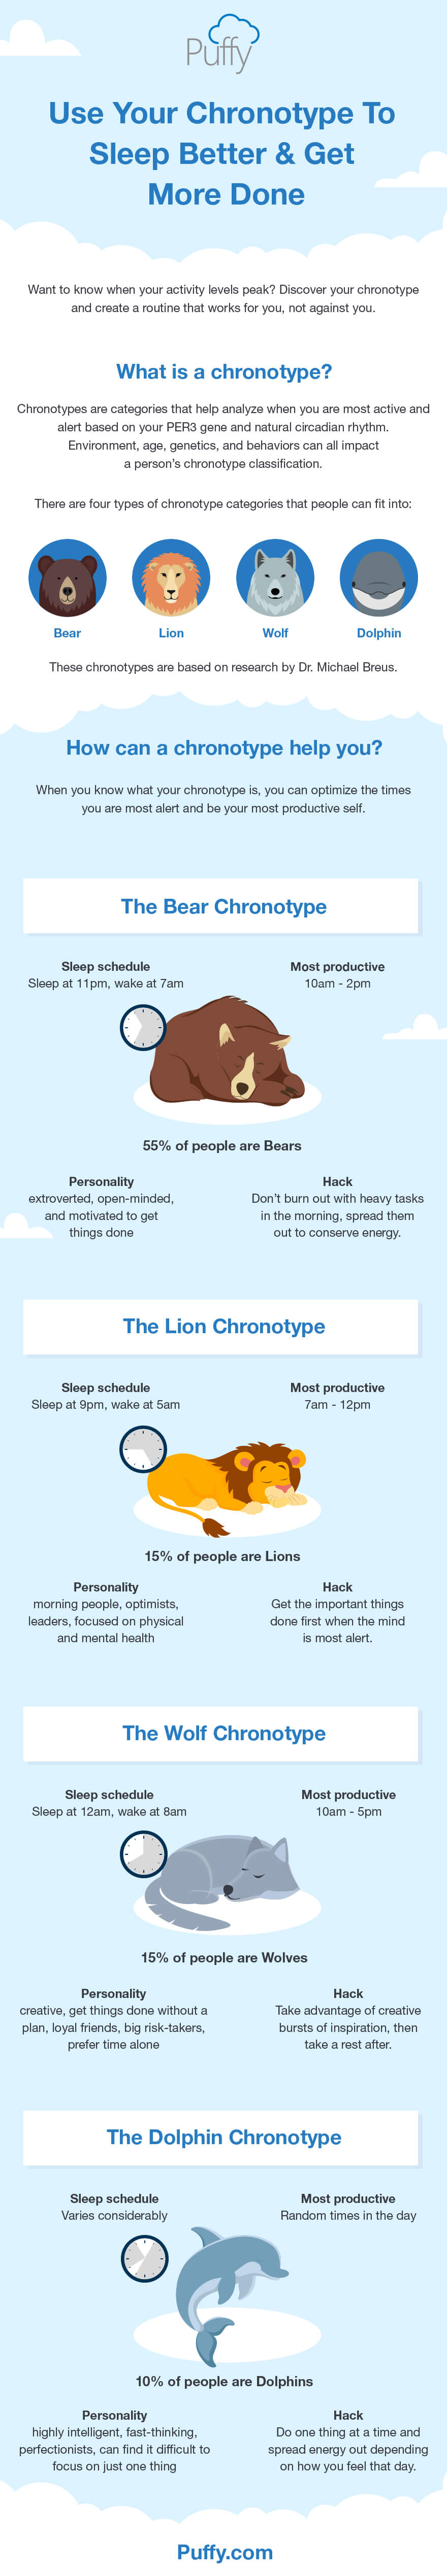 Chronotypes & What They Mean